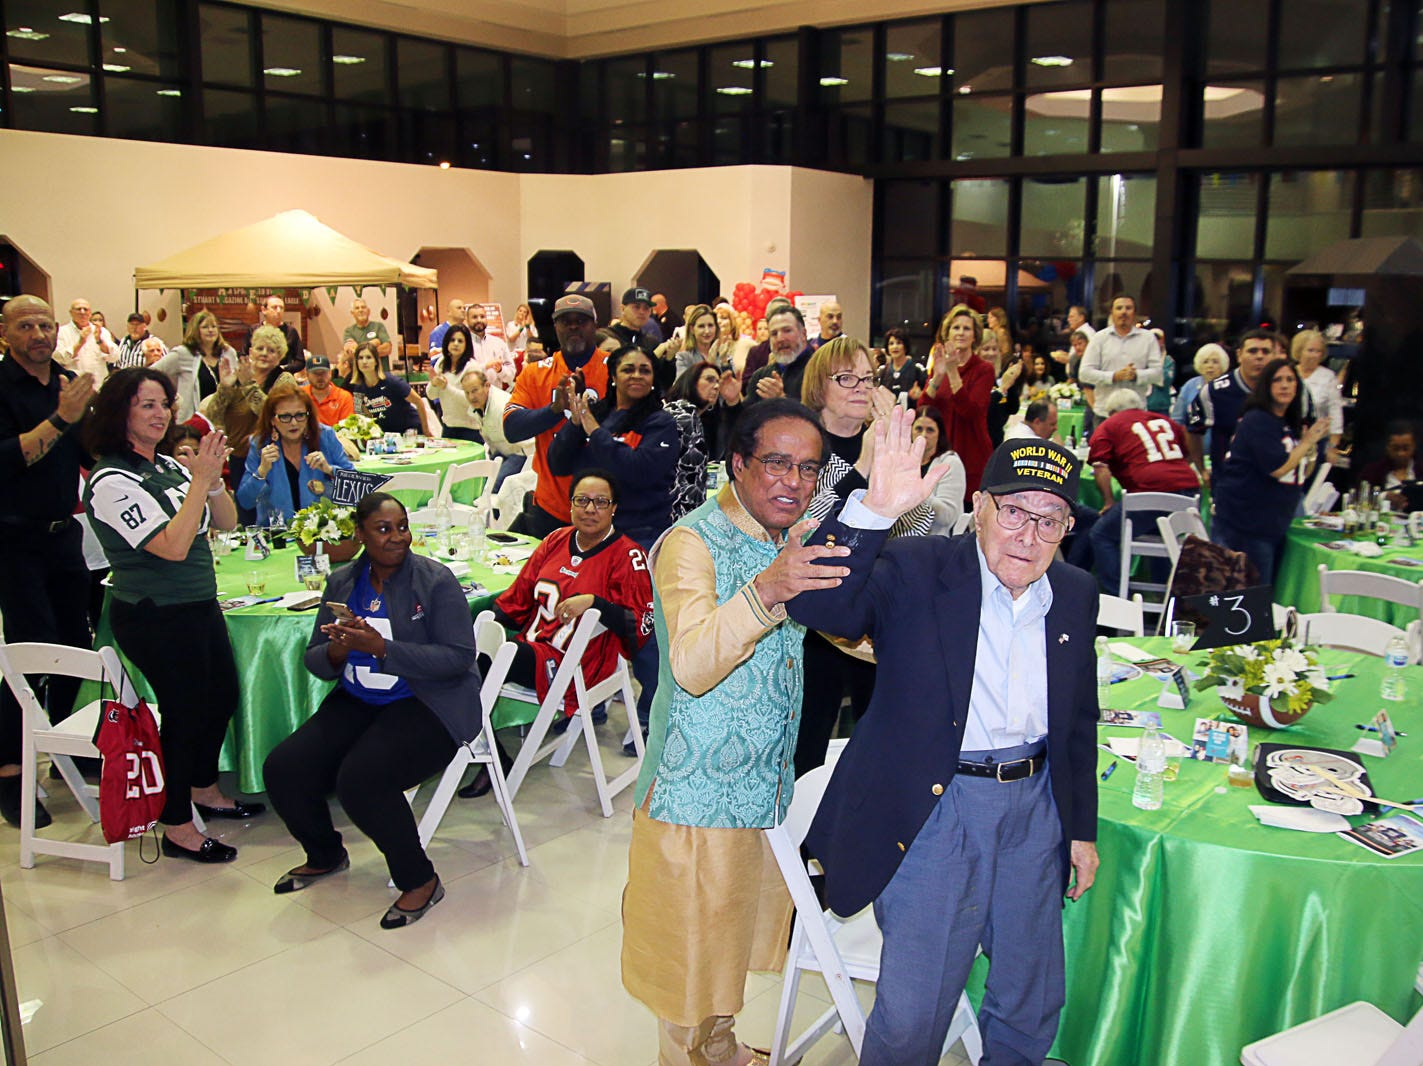 Dr. Shamsher Singh helps 100-year-old World War II Veteran Pete Peterson to his feet for an extended standing ovation at the Voices for Children Ultimate Tailgate Party on Jan. 26 at Treasure Coast Lexus.